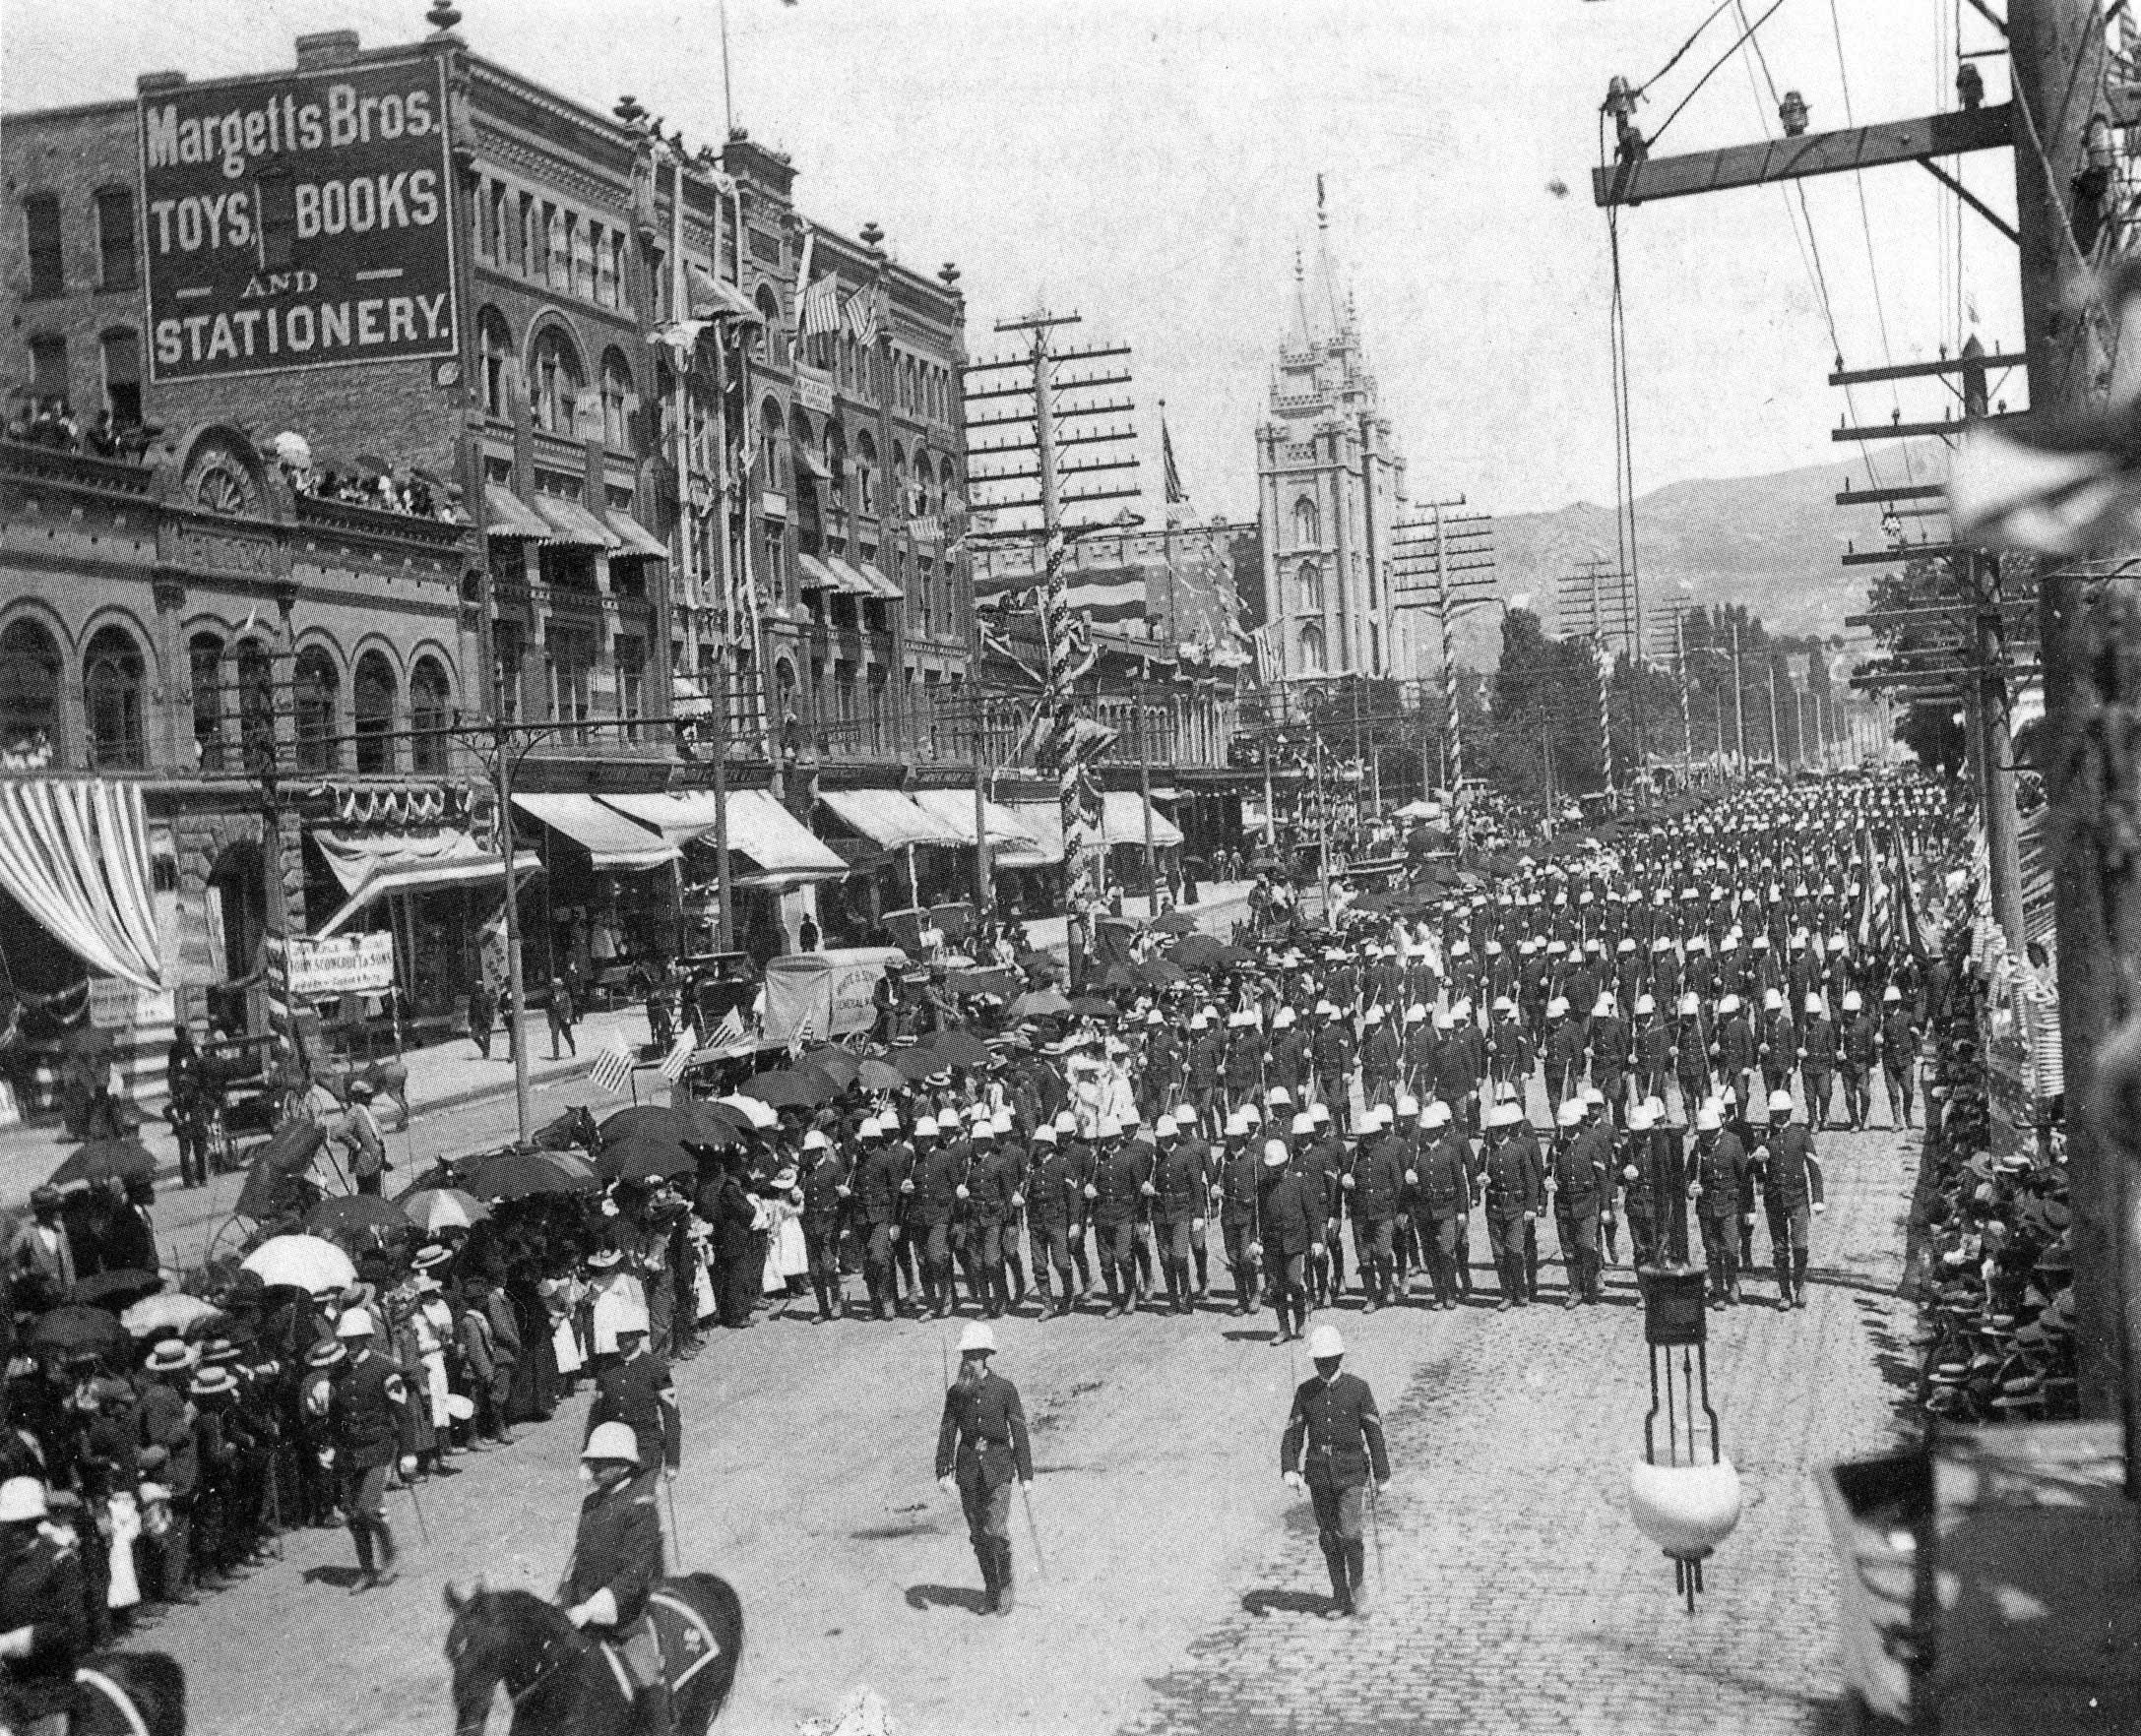 [p.307] 310. Troops march down Main Street in Salt Lake City during the Jubilee Celebration in 1897.